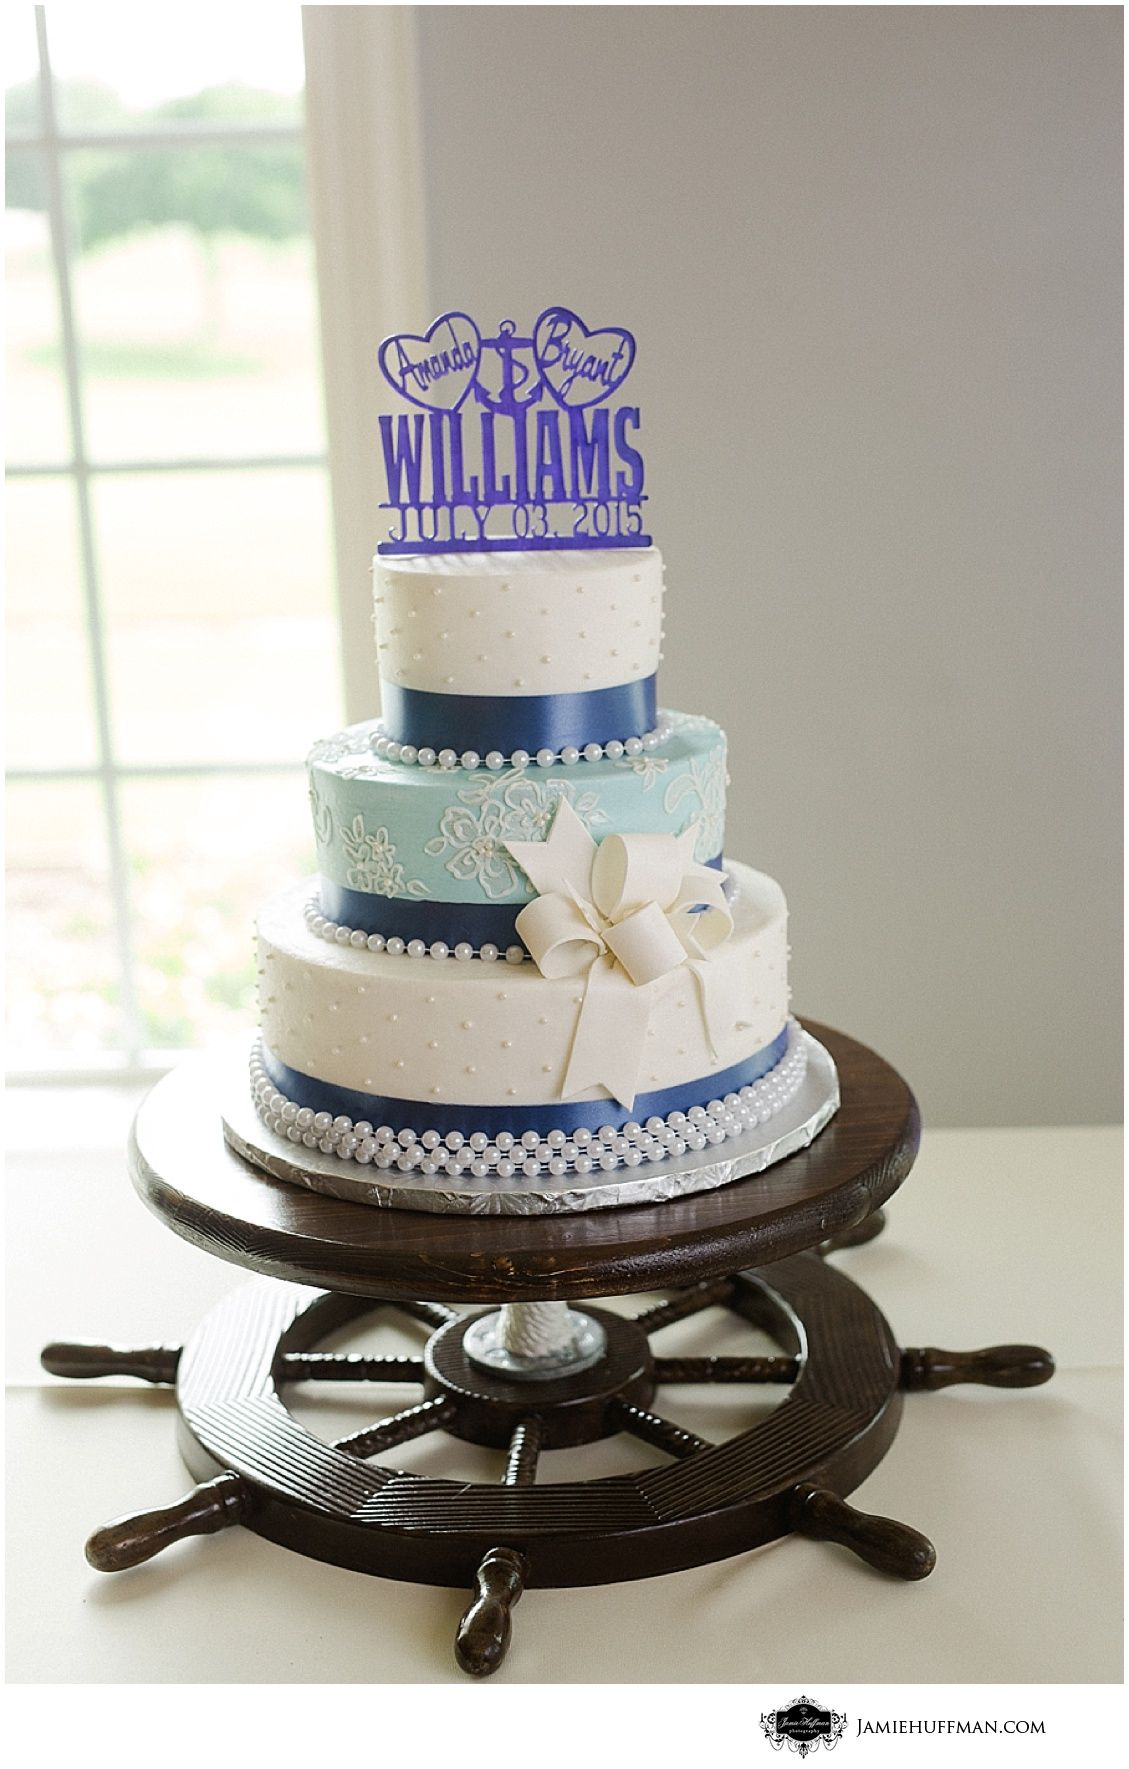 Pin By Nedda Rimmington Lisi On Storybook Unusual Cakes And Stands Nautical Wedding Cakes Nautical Wedding Cupcakes Unusual Wedding Cakes